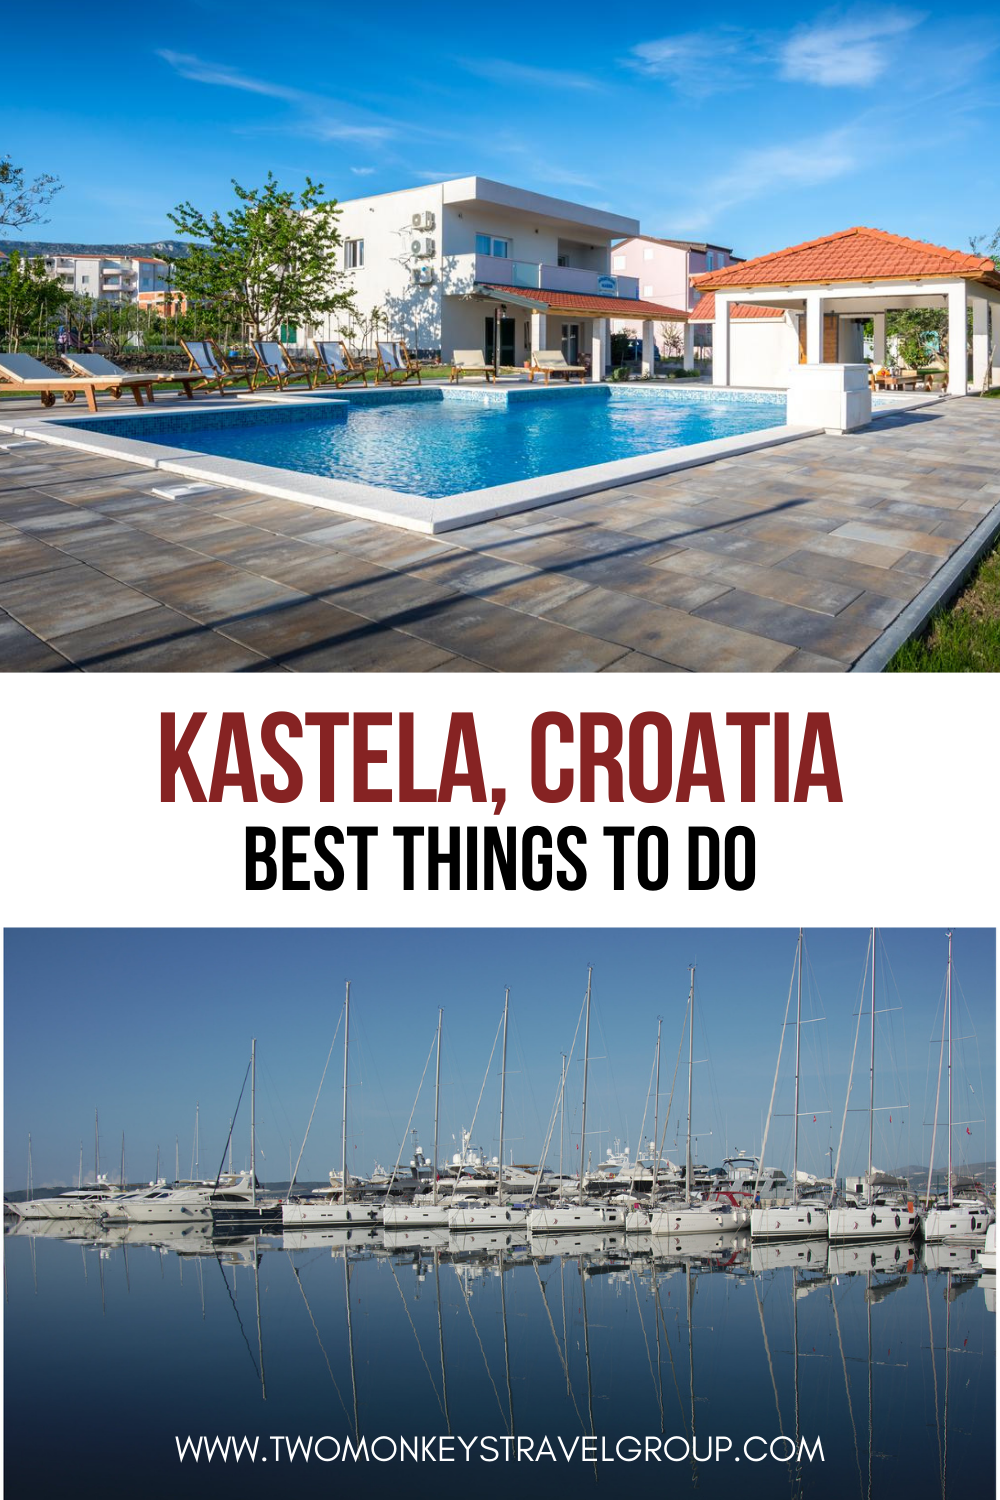 7 Best Things to do in Kastela, Croatia [with Suggested Tours]